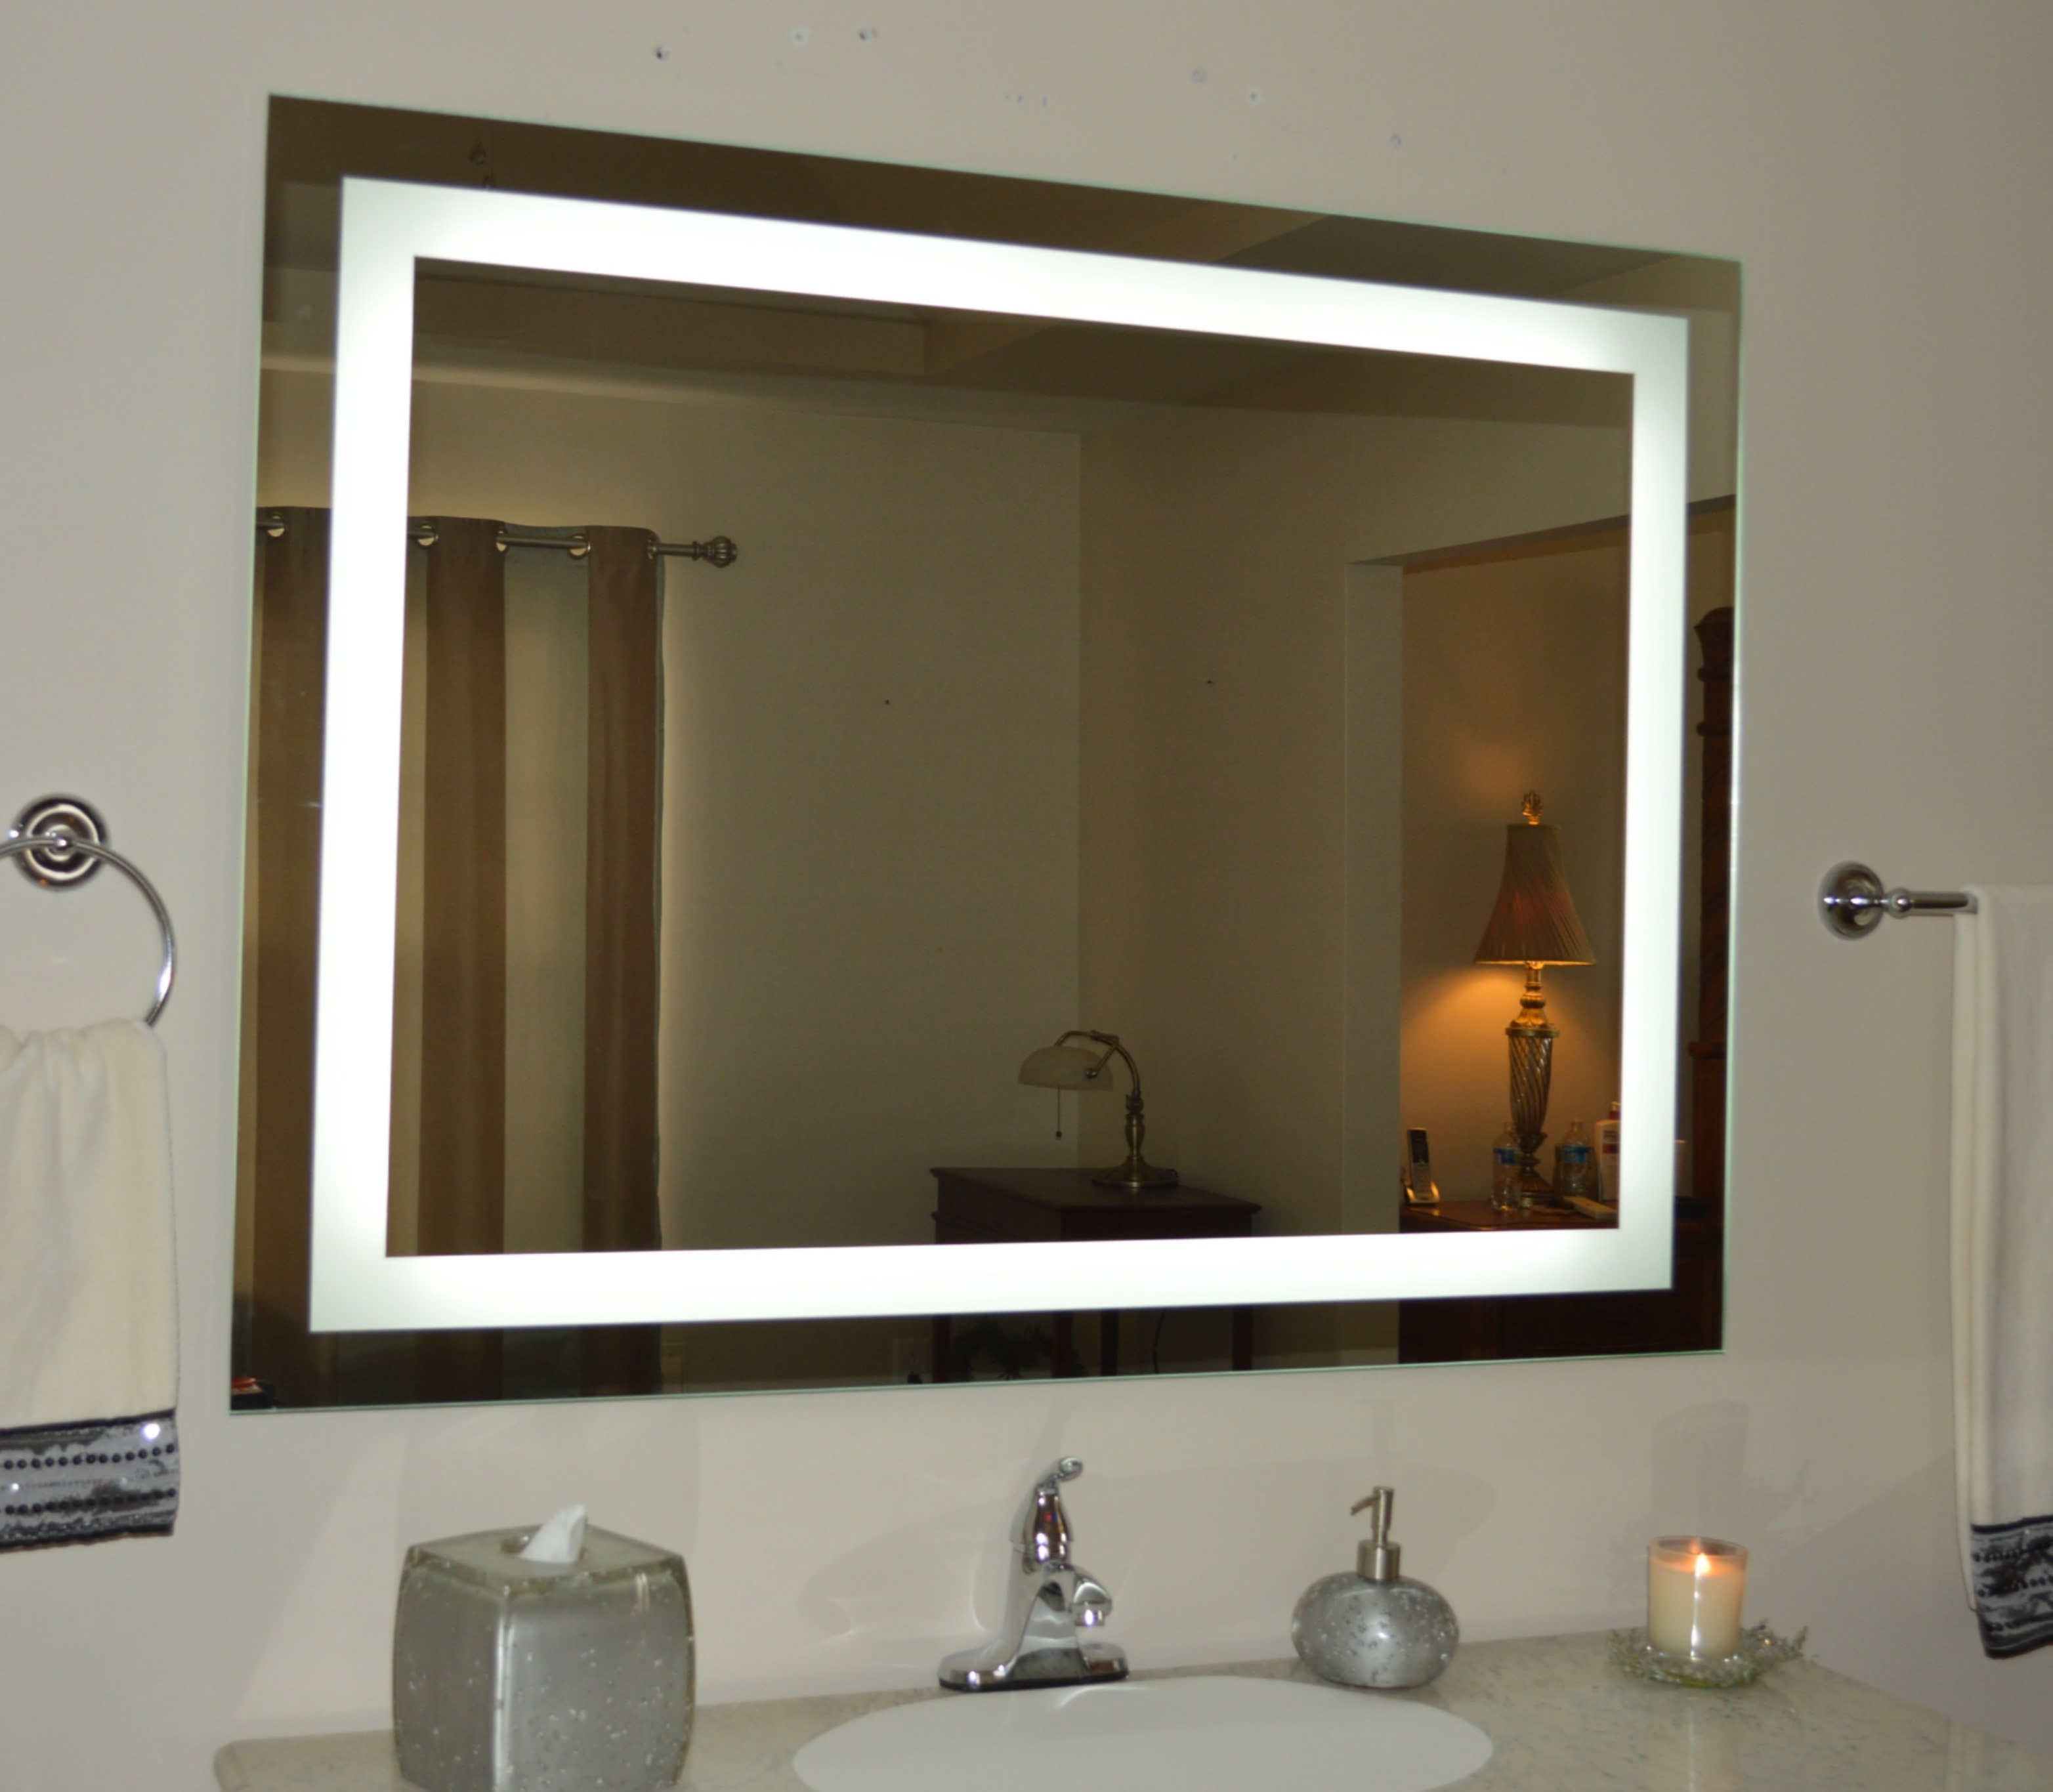 Permalink to Large Wall Mounted Lighted Makeup Mirror